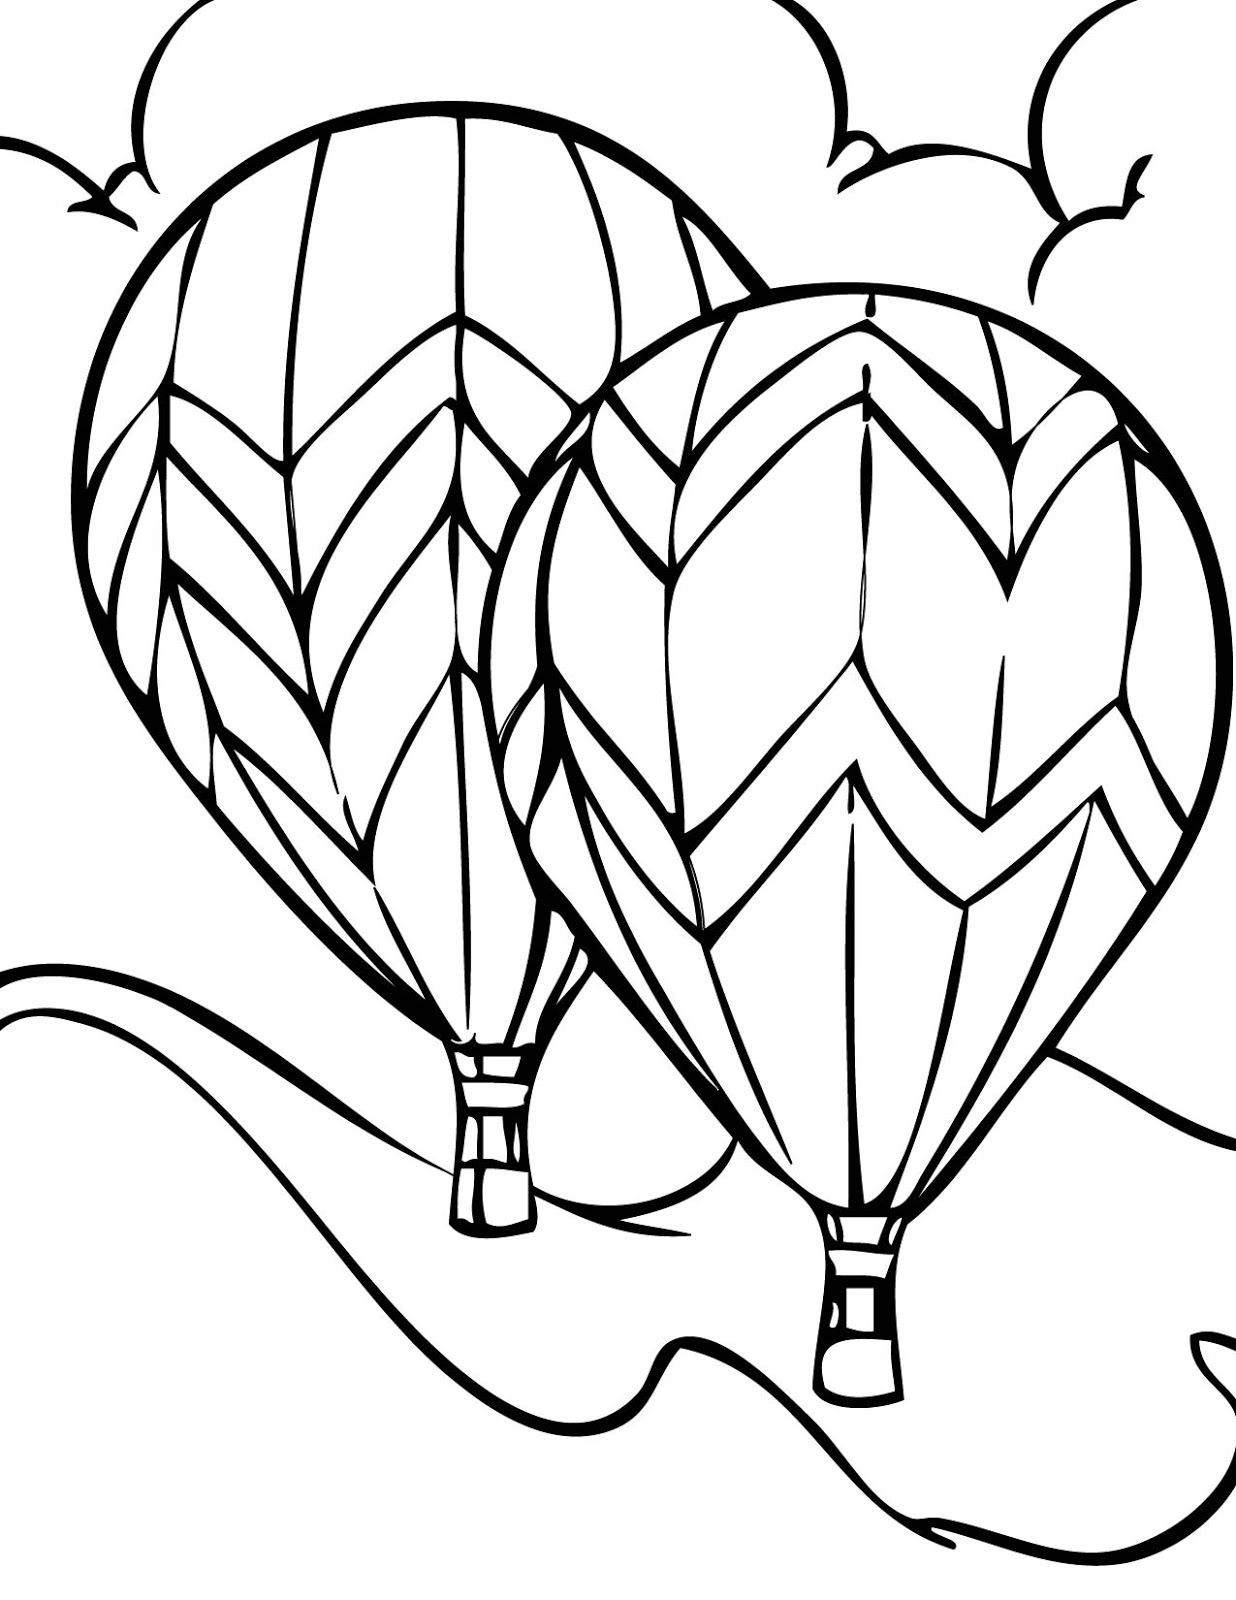 Hot Air Balloon Coloring Pages  Gallery 20m - To print for your project